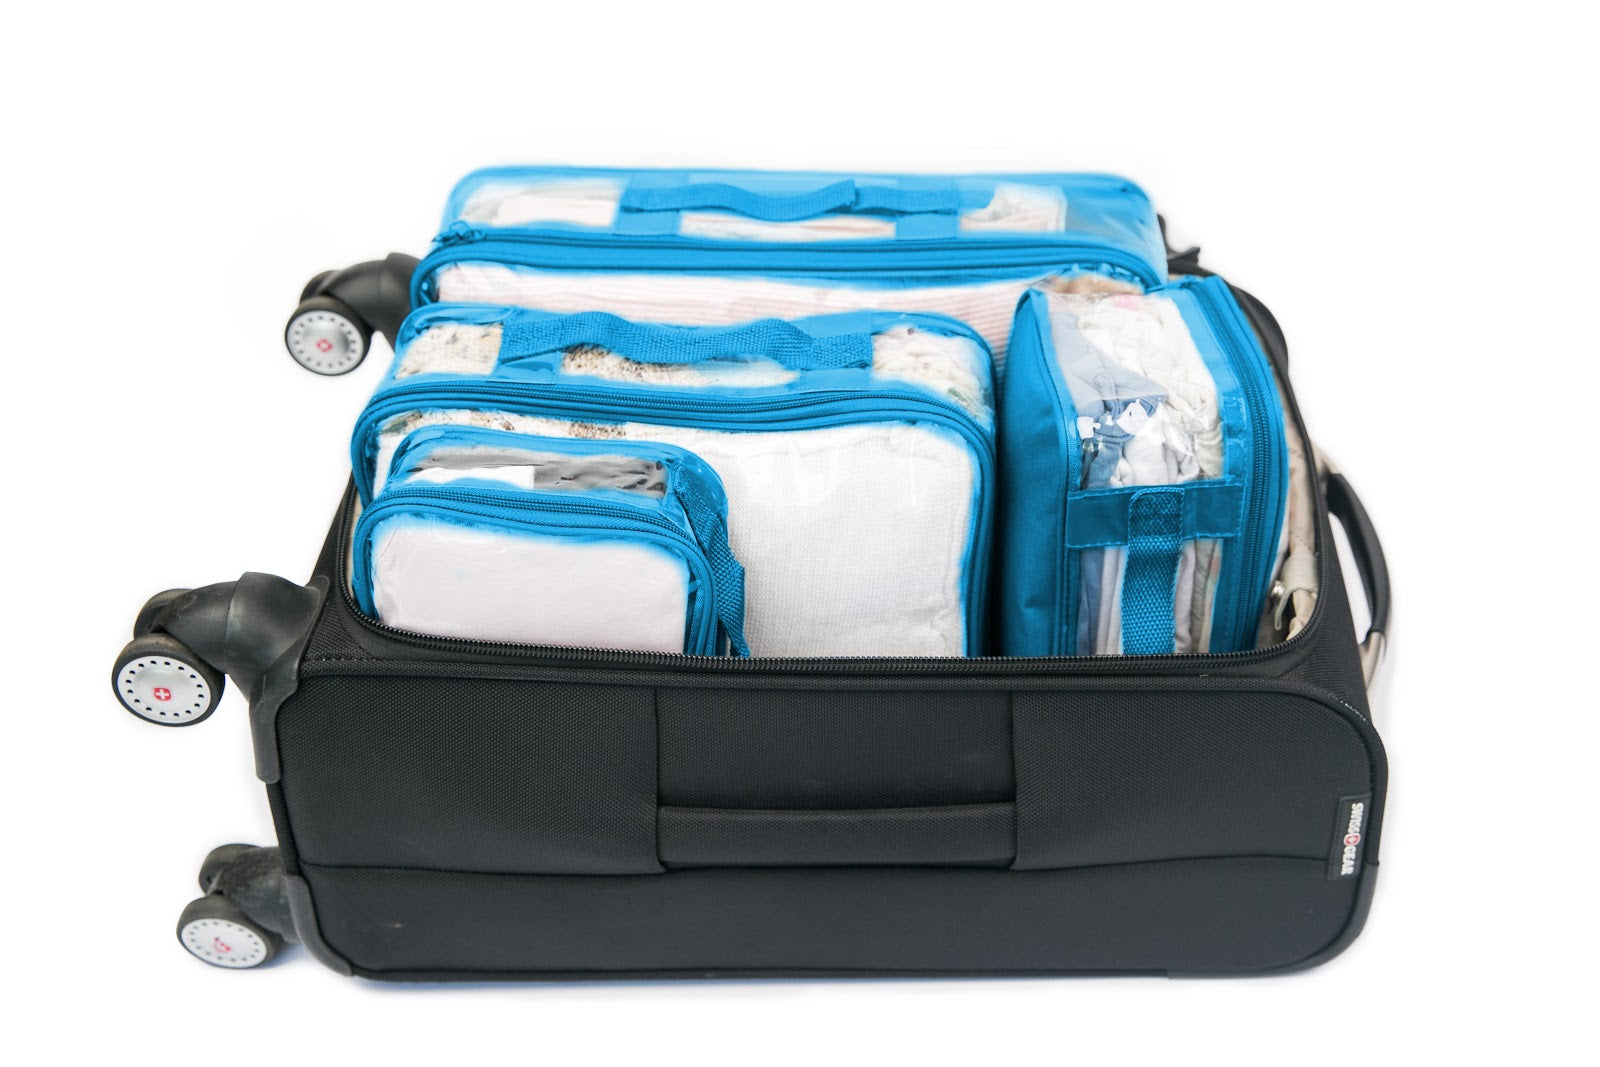 Starter Set in turquoise for holiday suitcase checklist